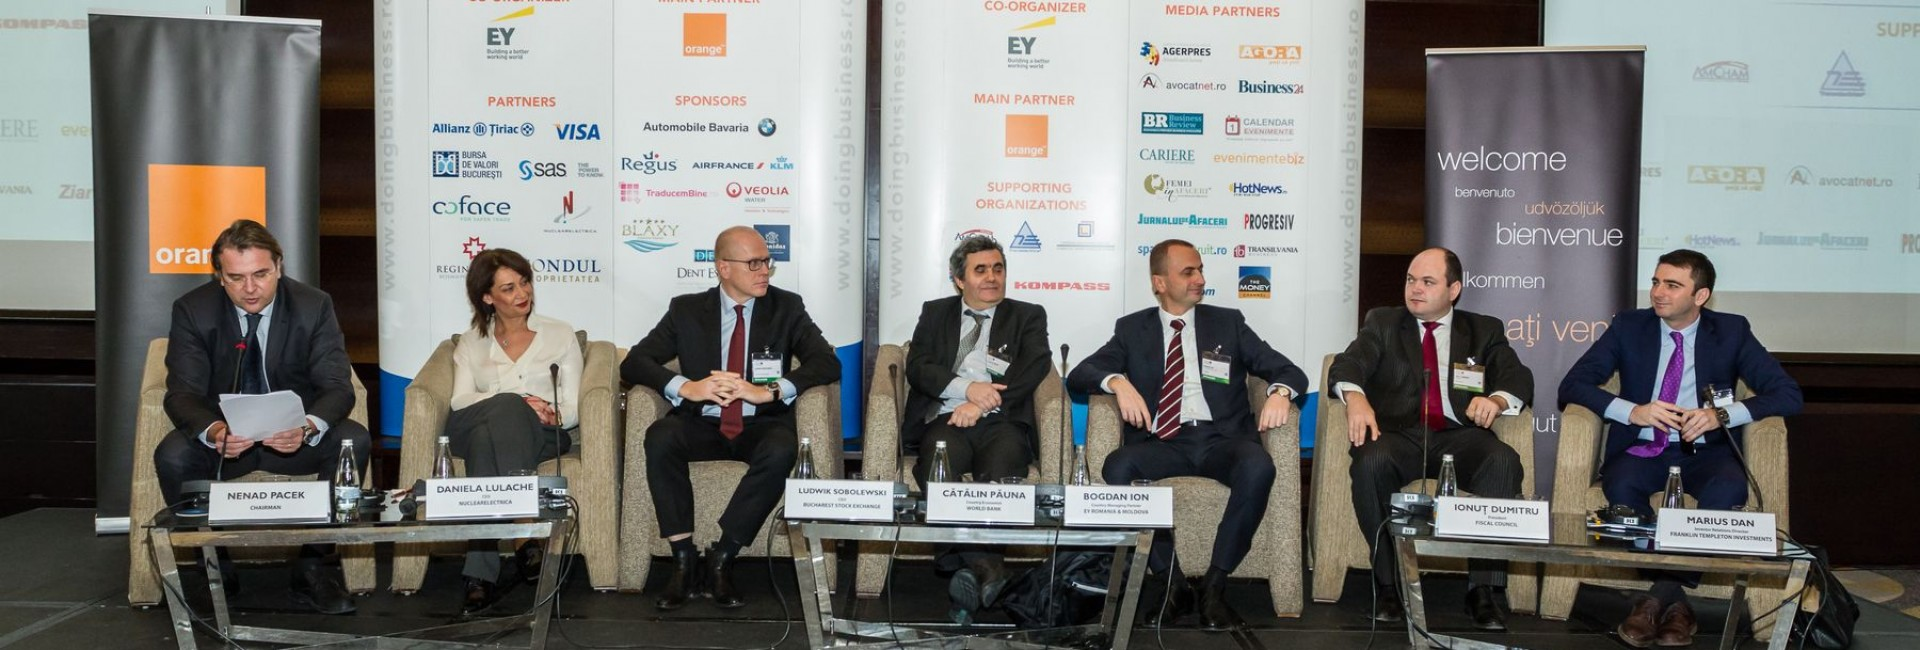 CEO Conference - Shaping the Future, Bucharest, 2015